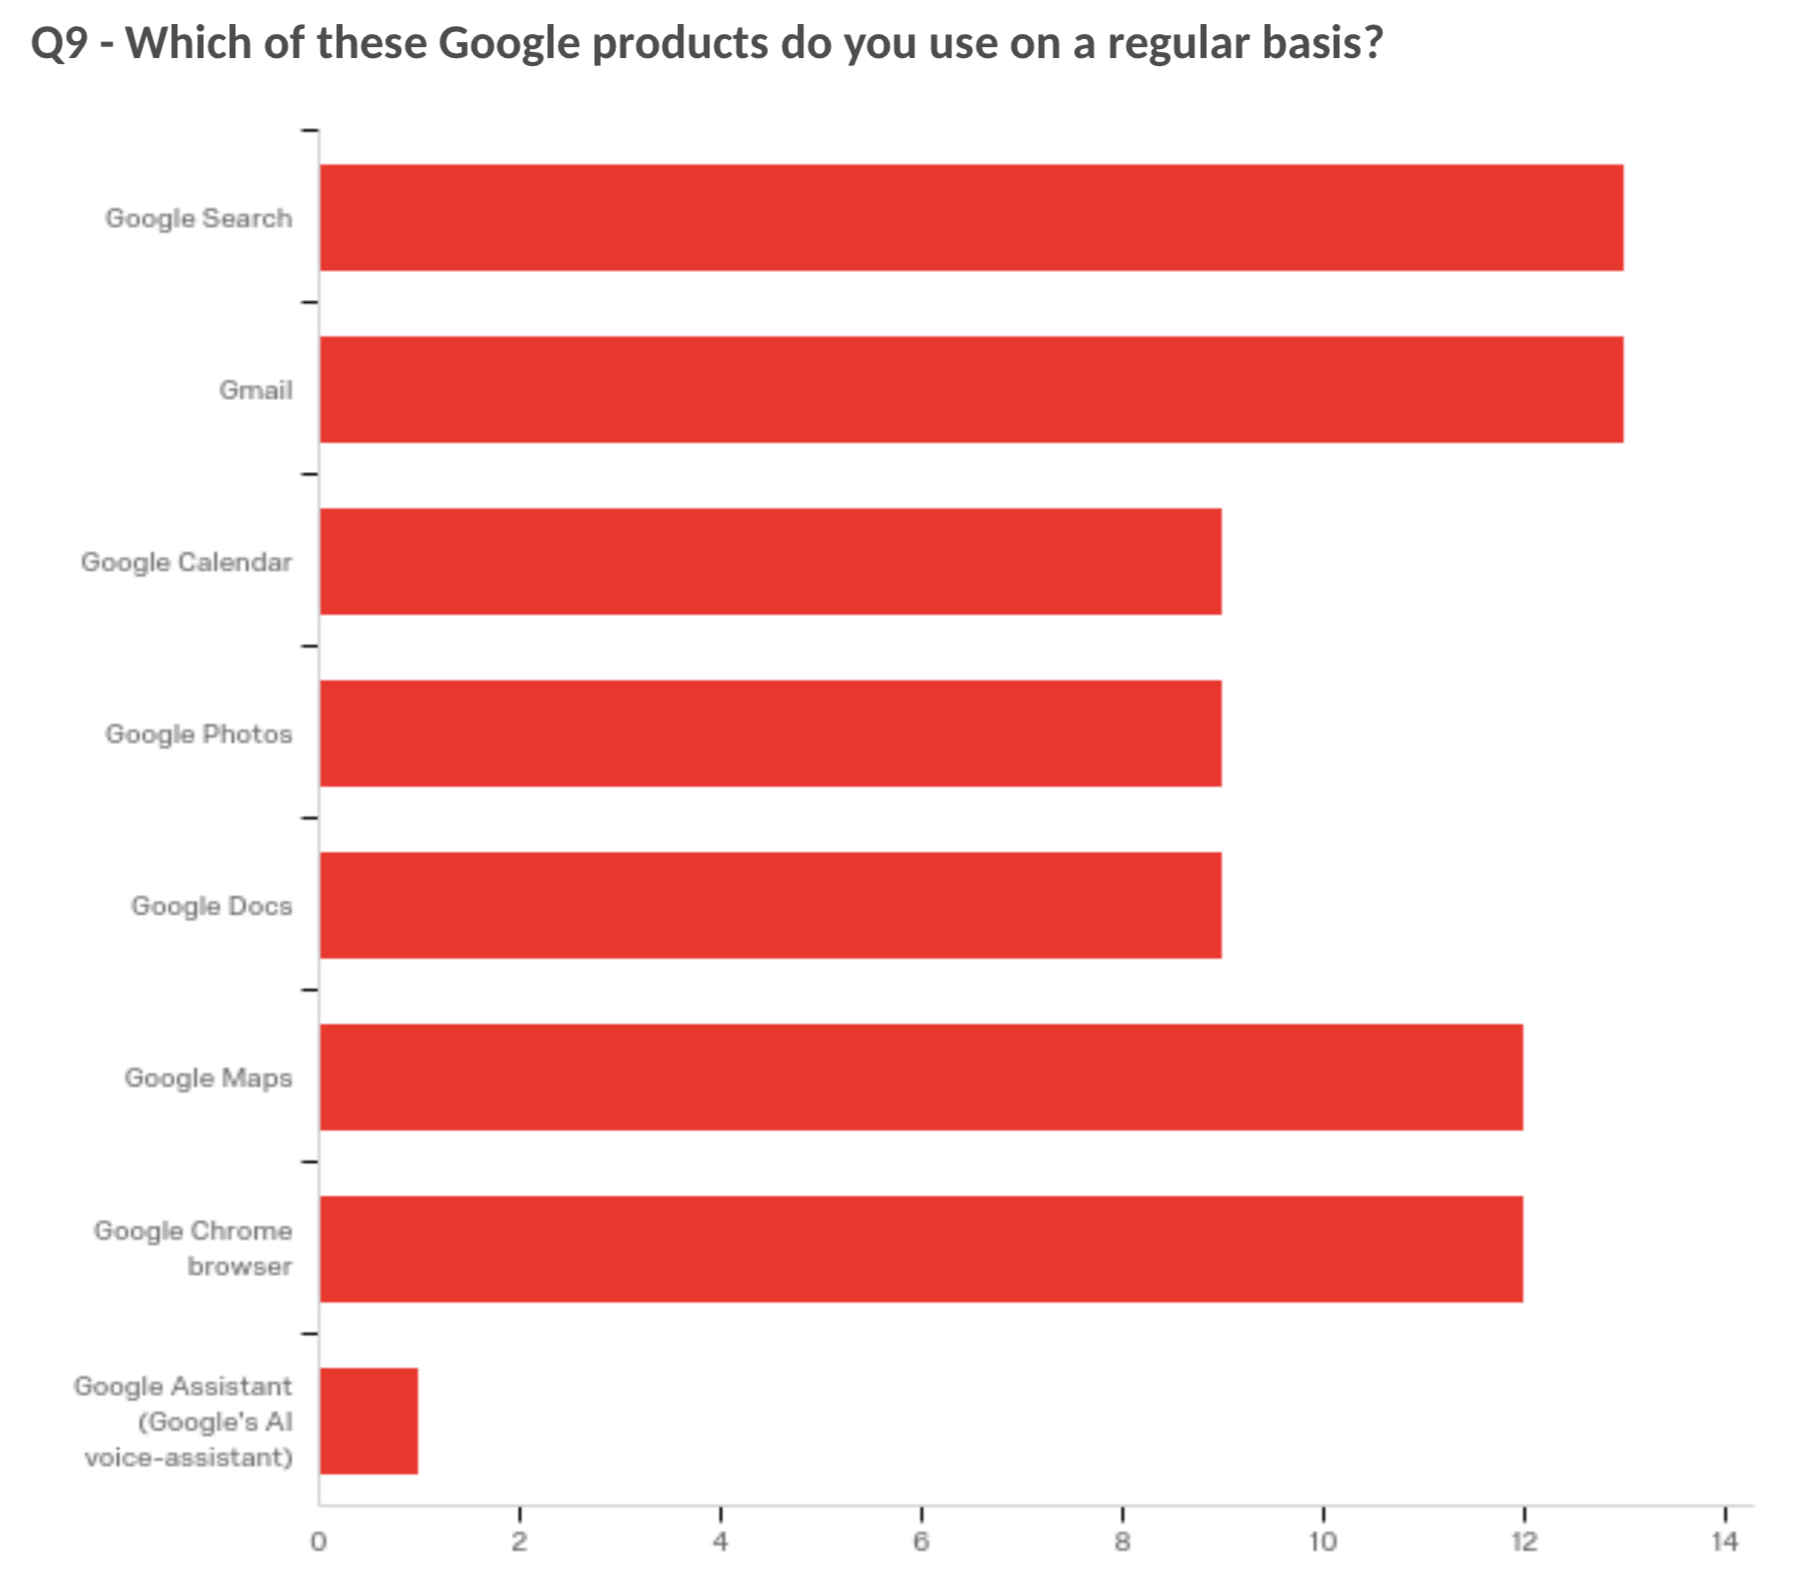 Almost all the participants use more than one Google service on a regular basis.